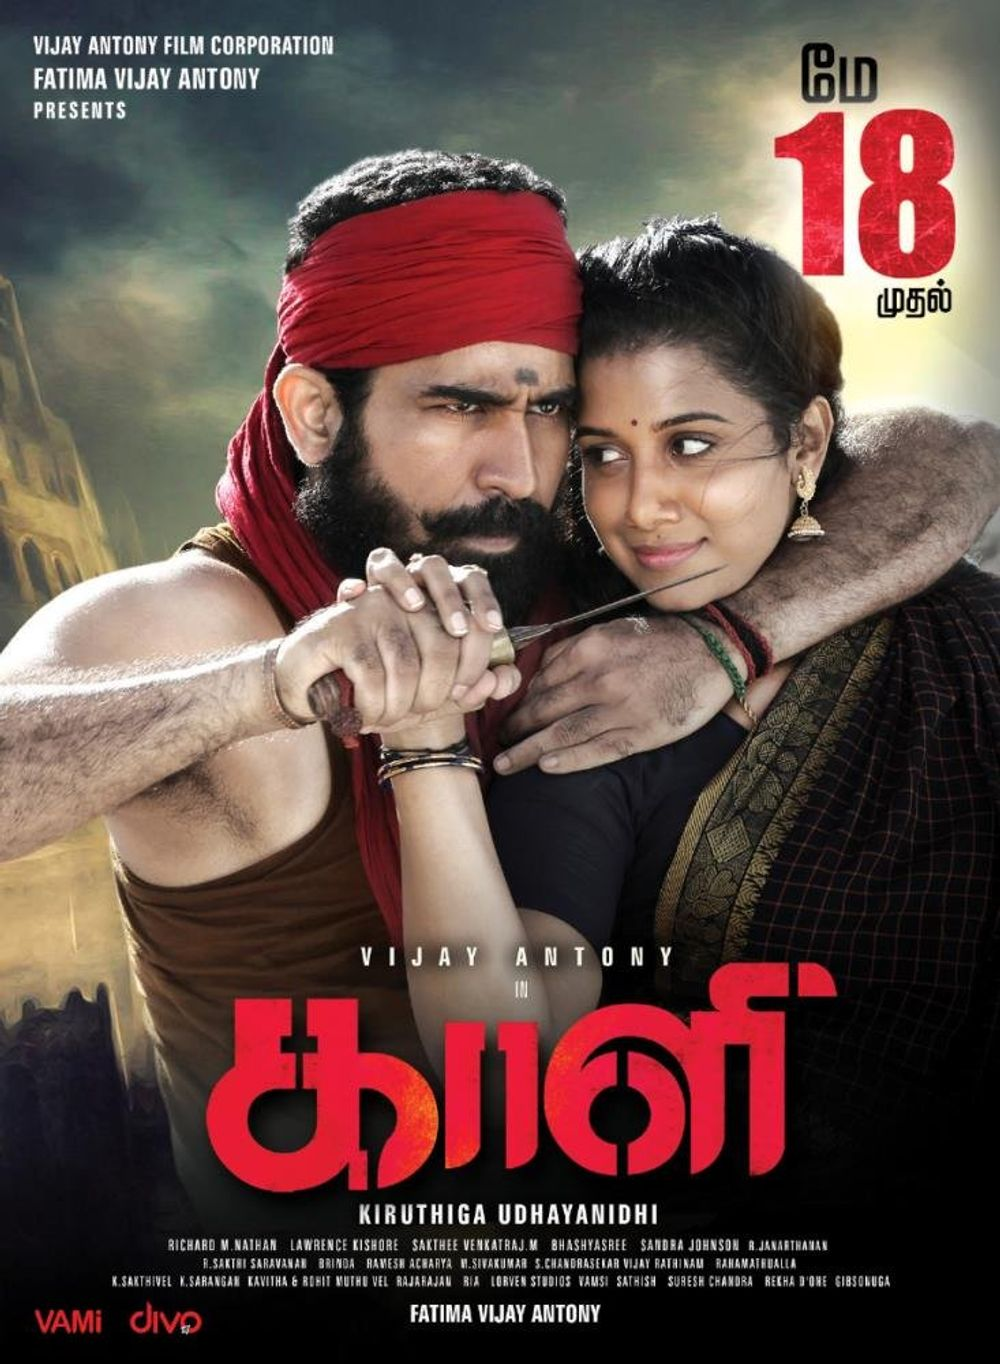 Kaali (Jawab The Justice) 2018 Hindi Dual Audio 459MB UNCUT HDRip ESubs Download